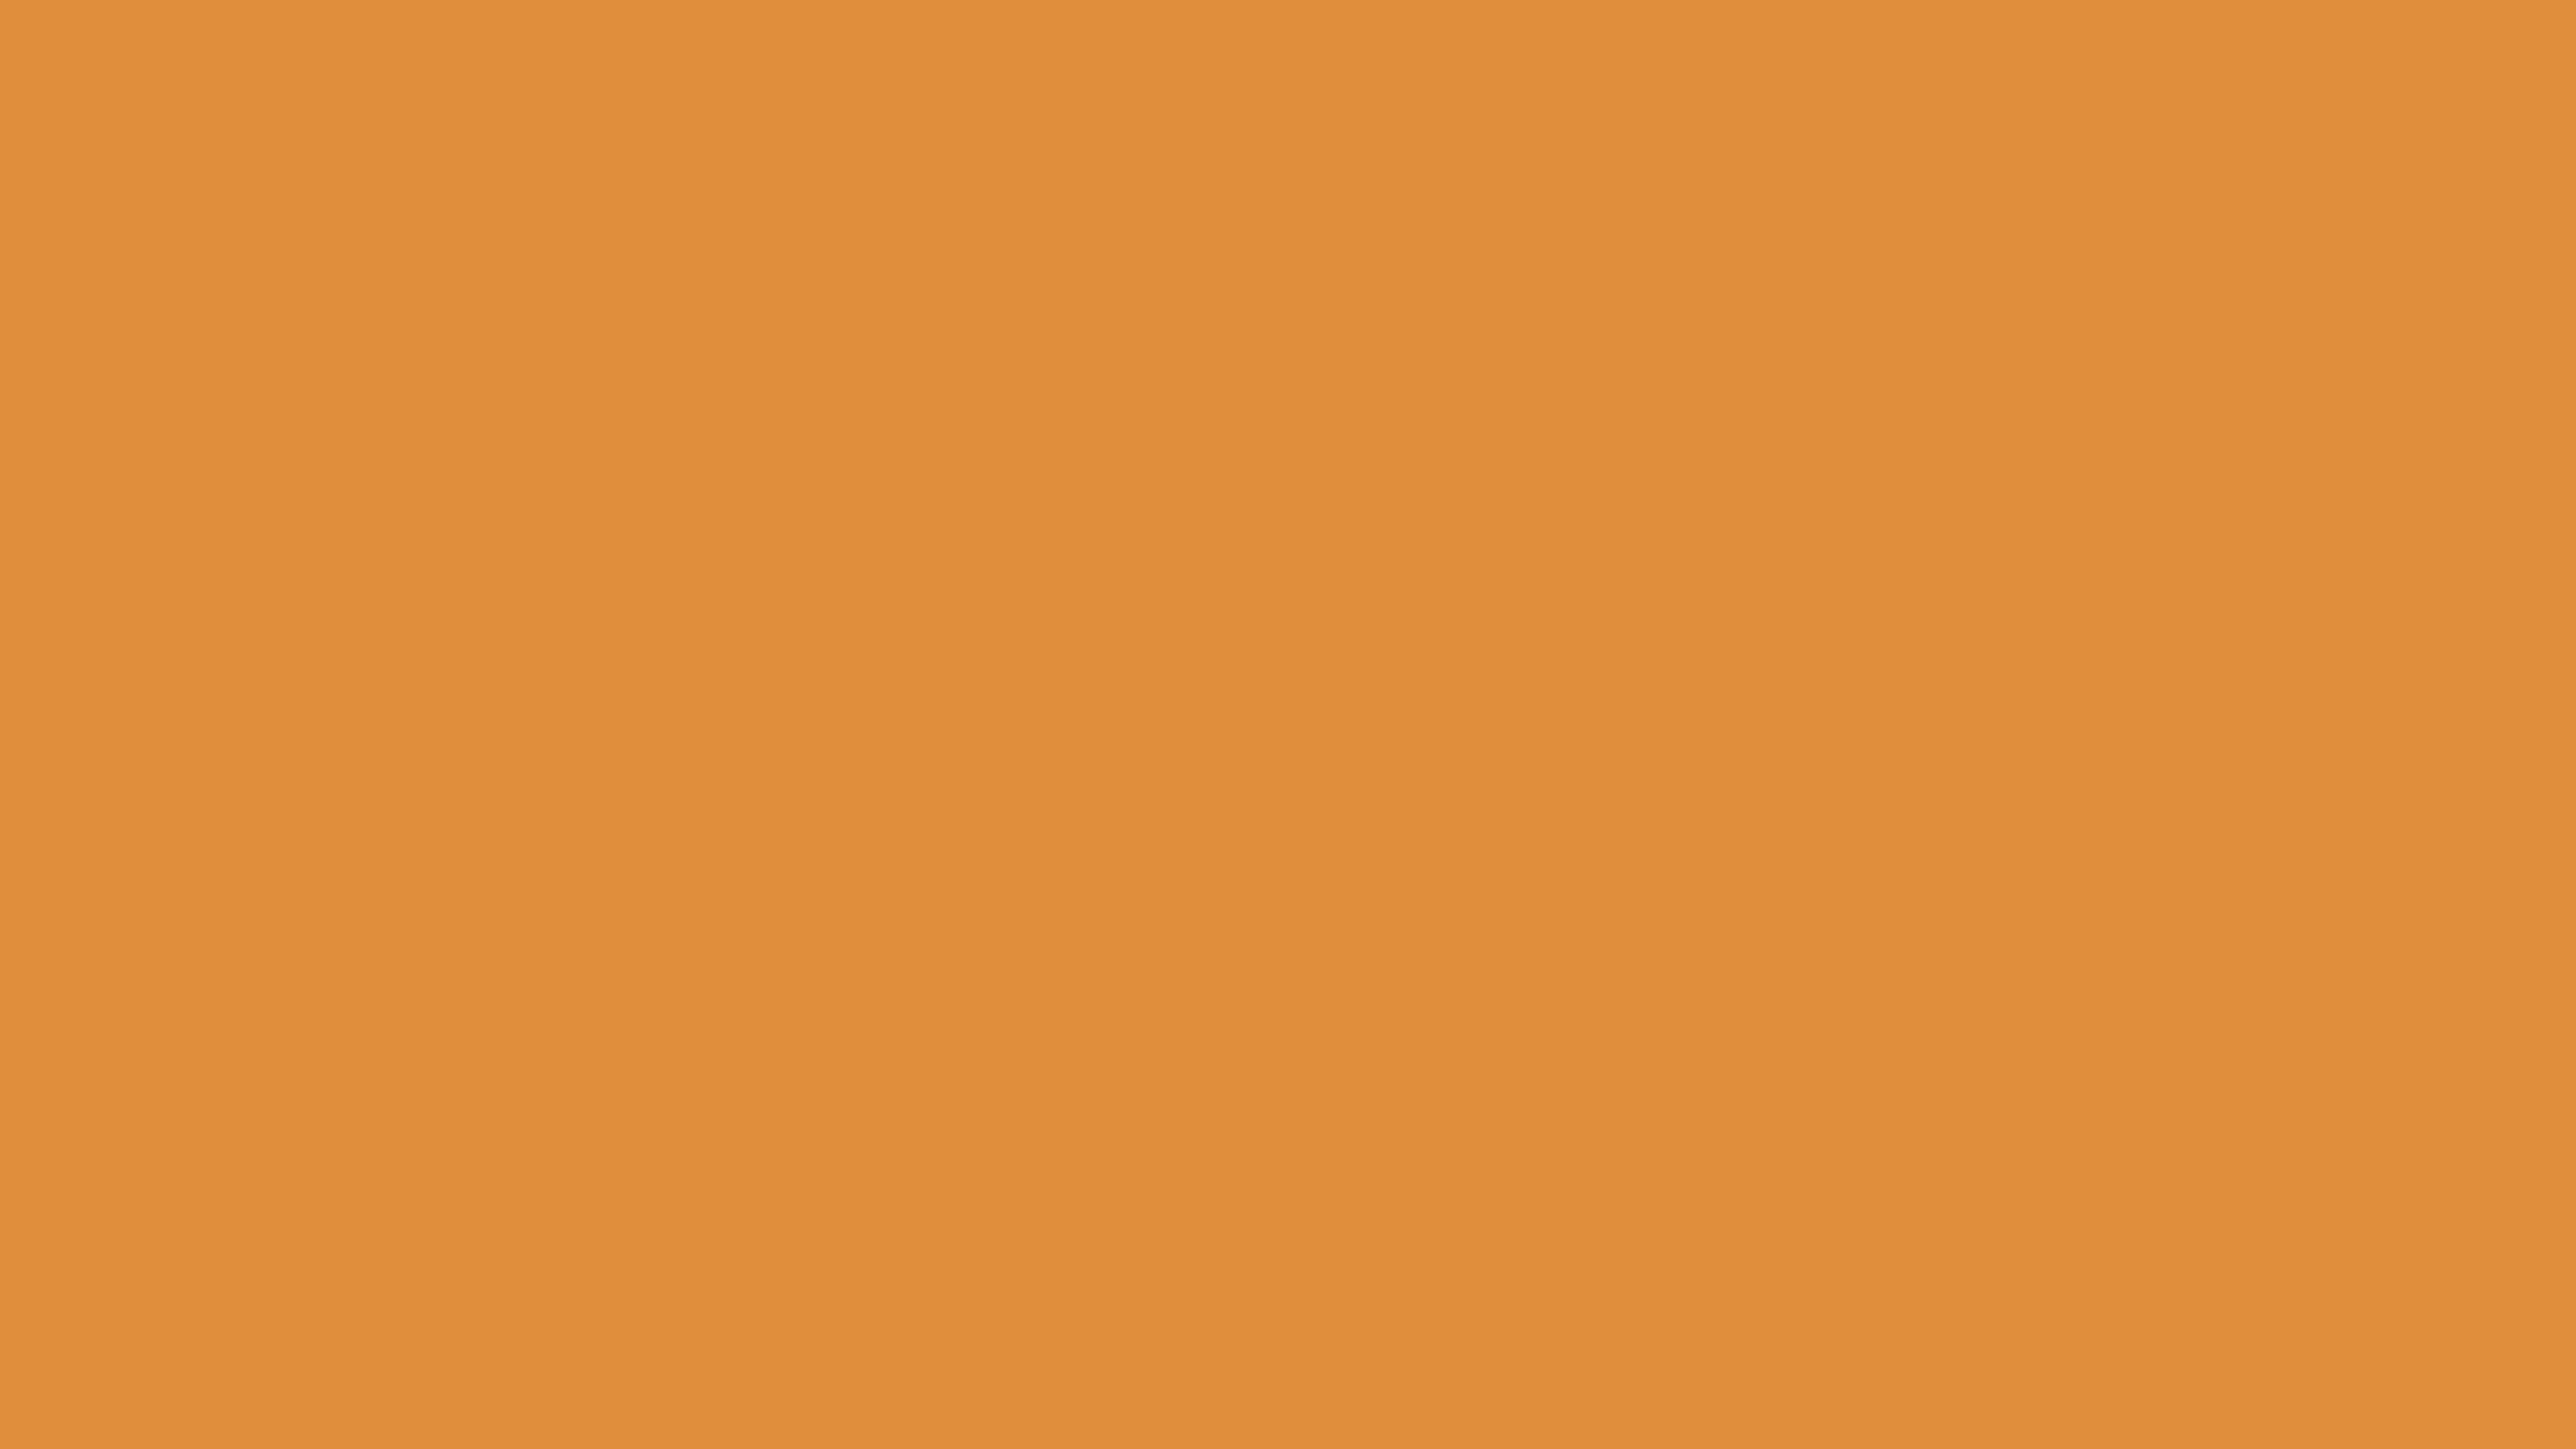 4096x2304 Tigers Eye Solid Color Background